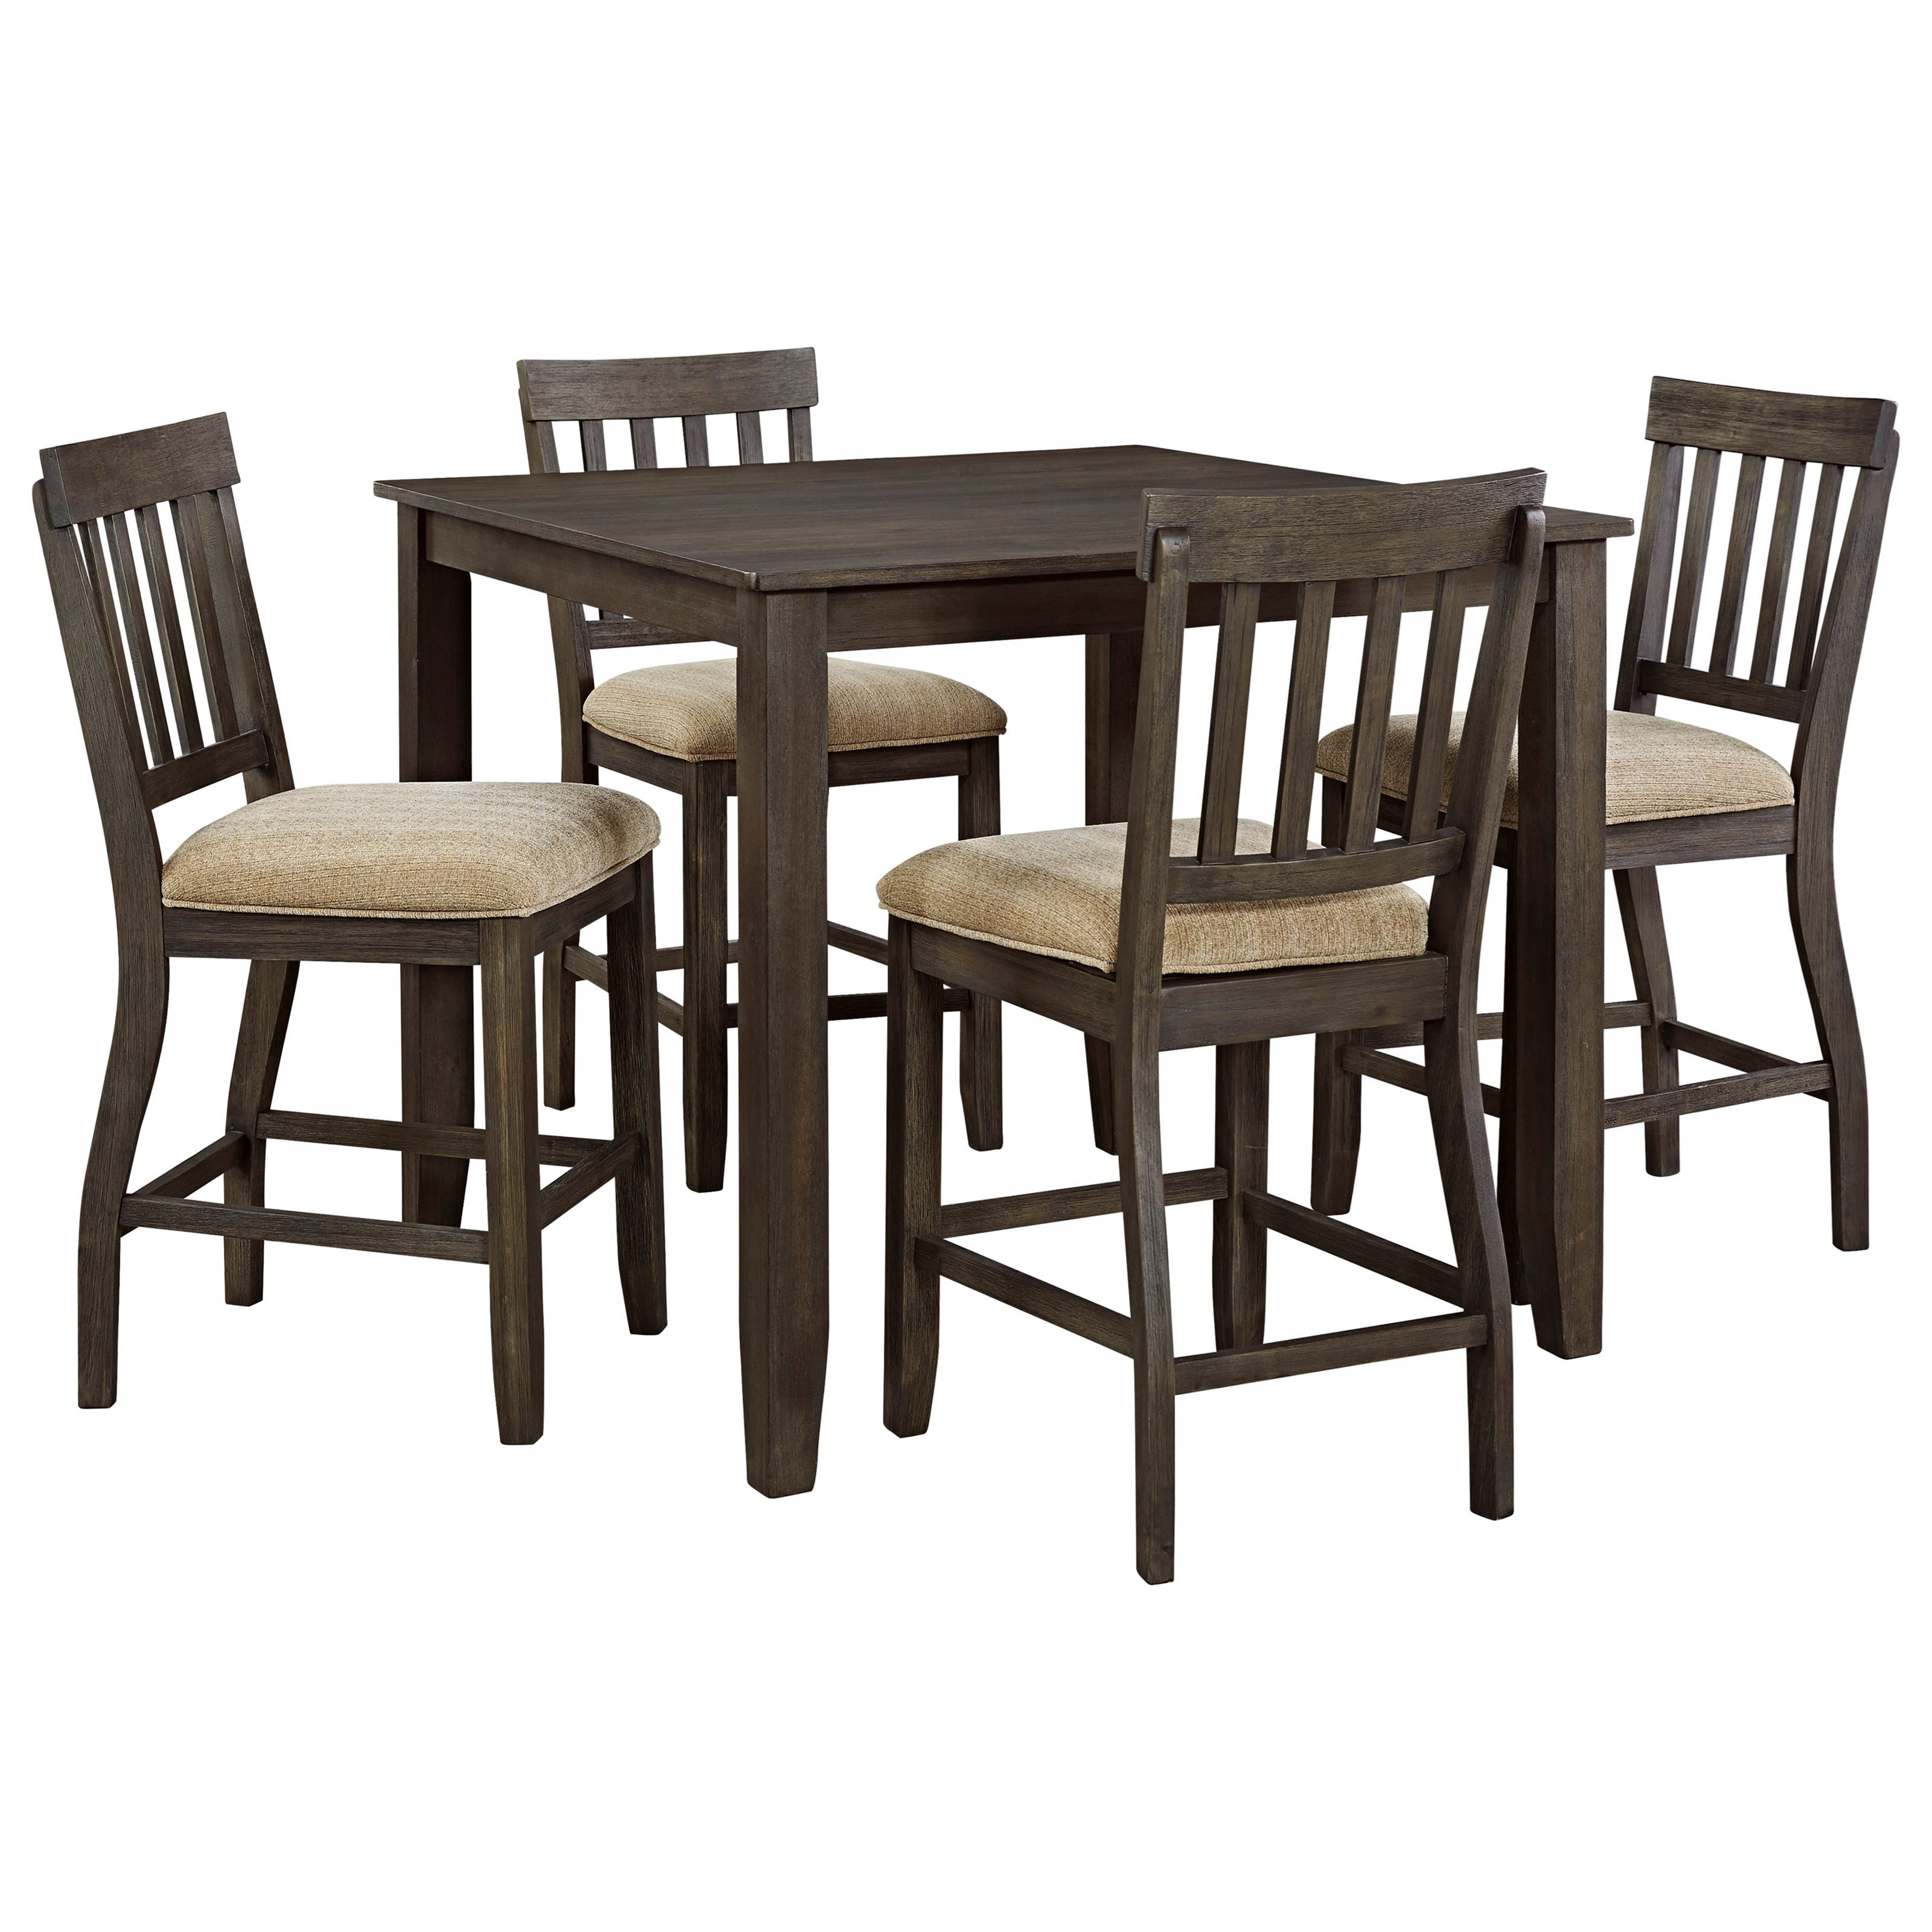 Signature design by ashley dresbar 5 piece square dining for Square dinette sets